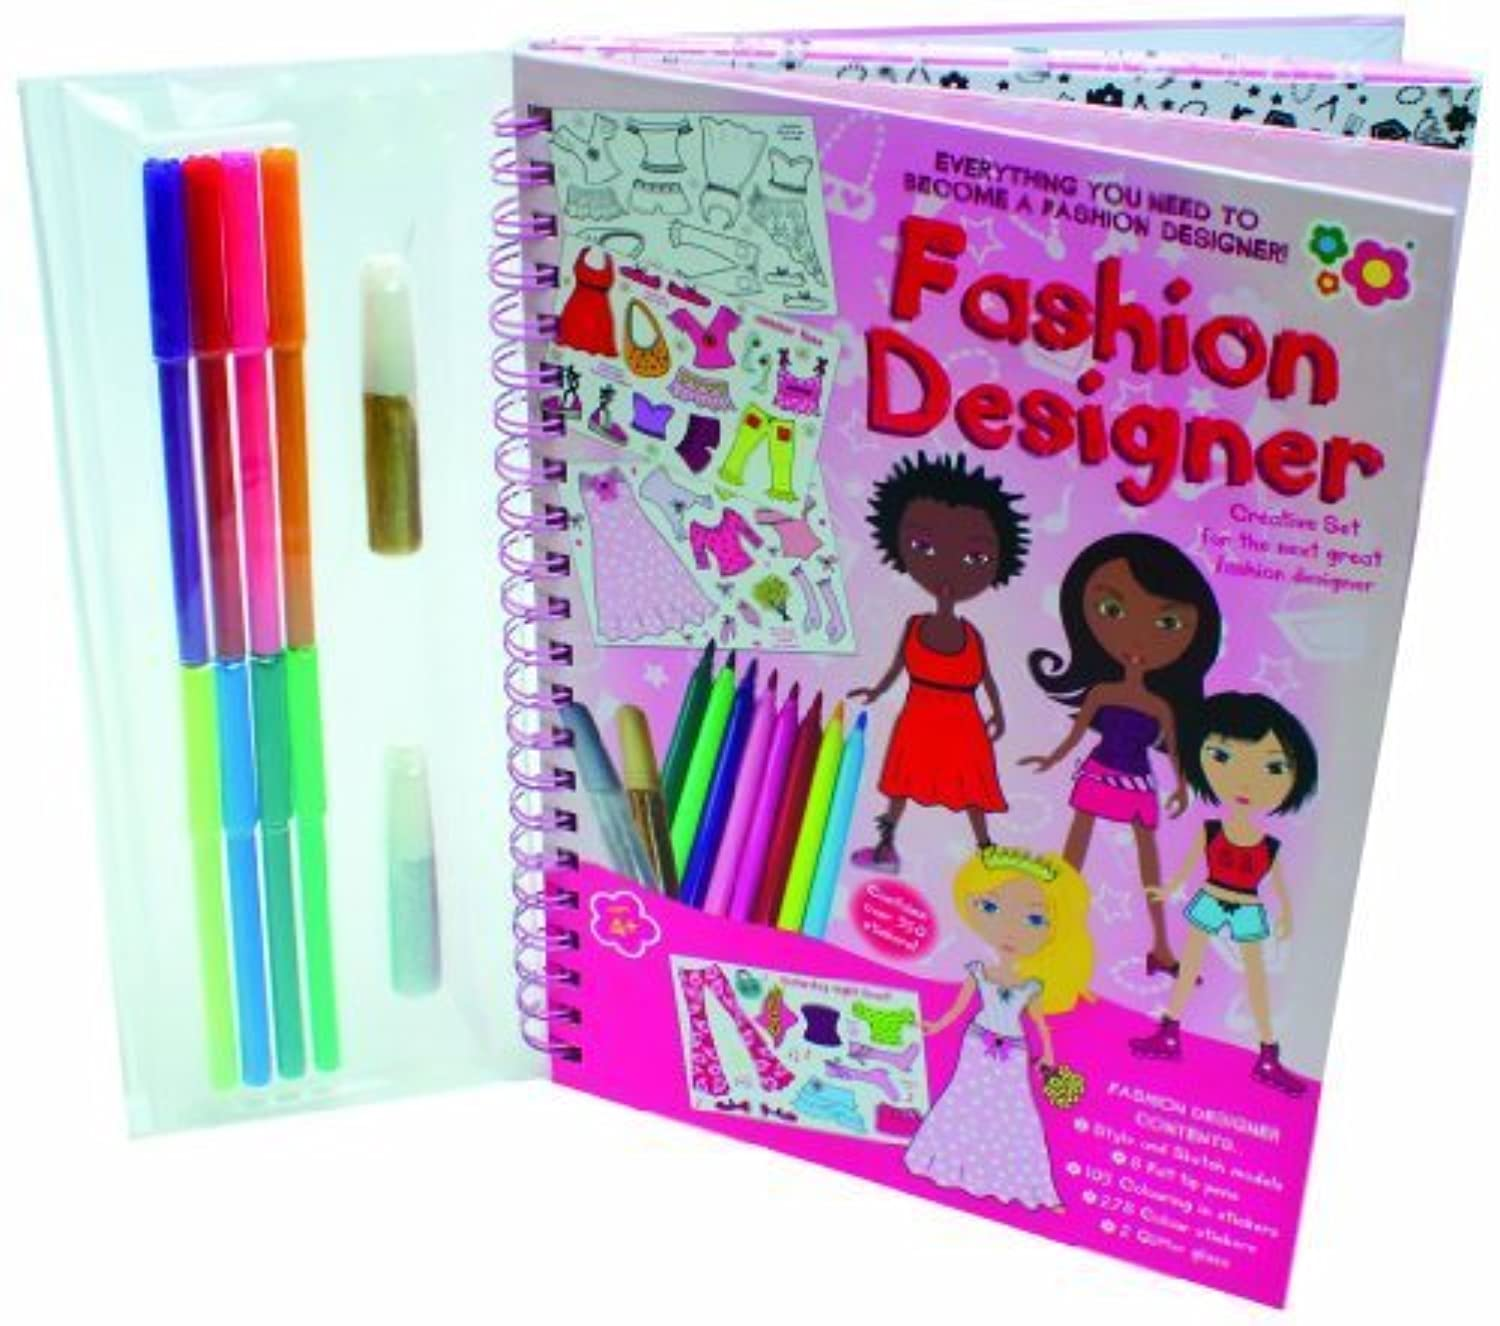 Meadow Kids Wiro book-fashion Designer by Meadow Kids